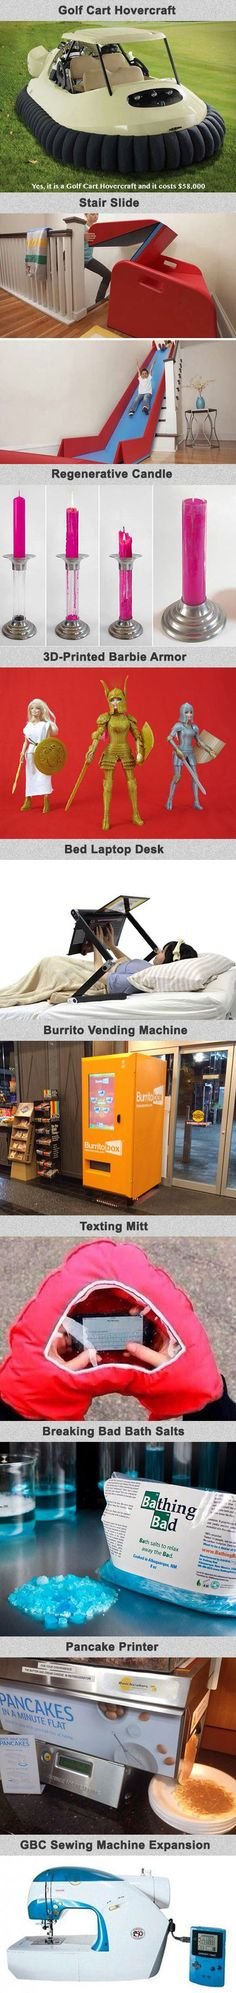 Here are some bizarre gadgets and random inventions you will not believe…